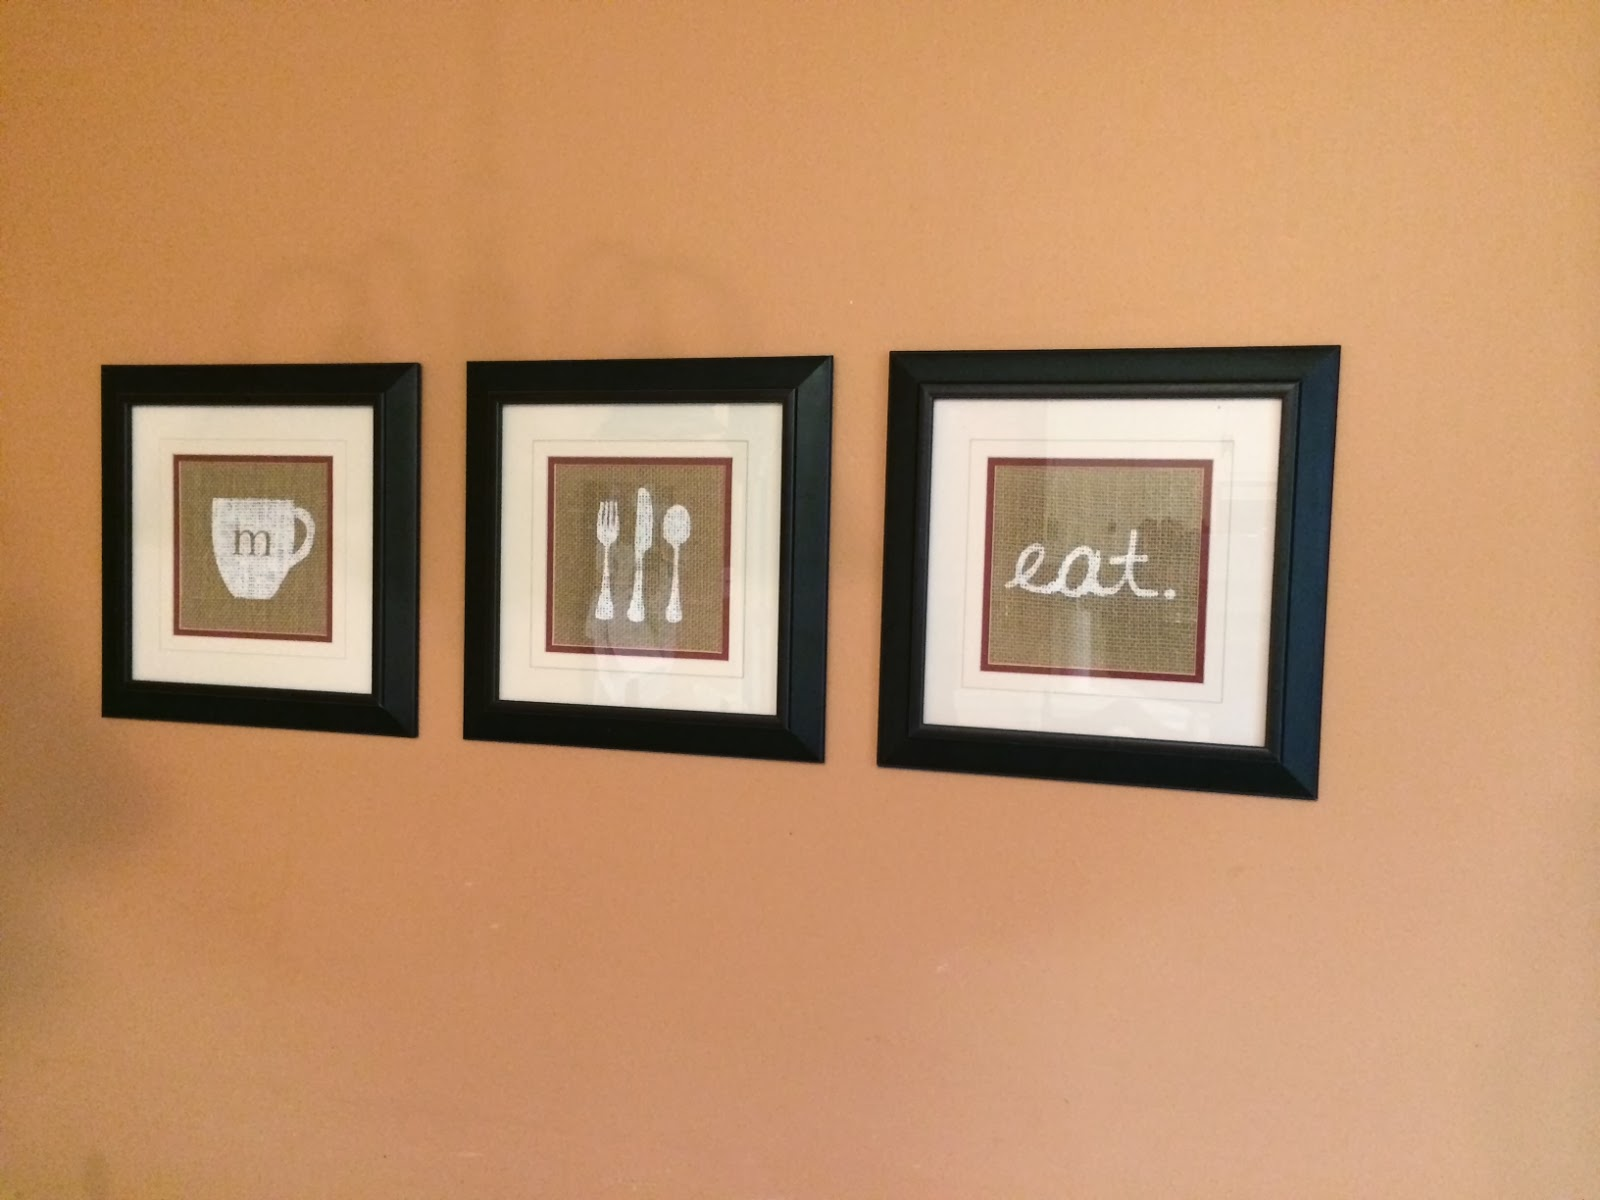 Diy Kitchen Wall Art Diy Kitchen Art Made Easy With Silhouette Silhouette School